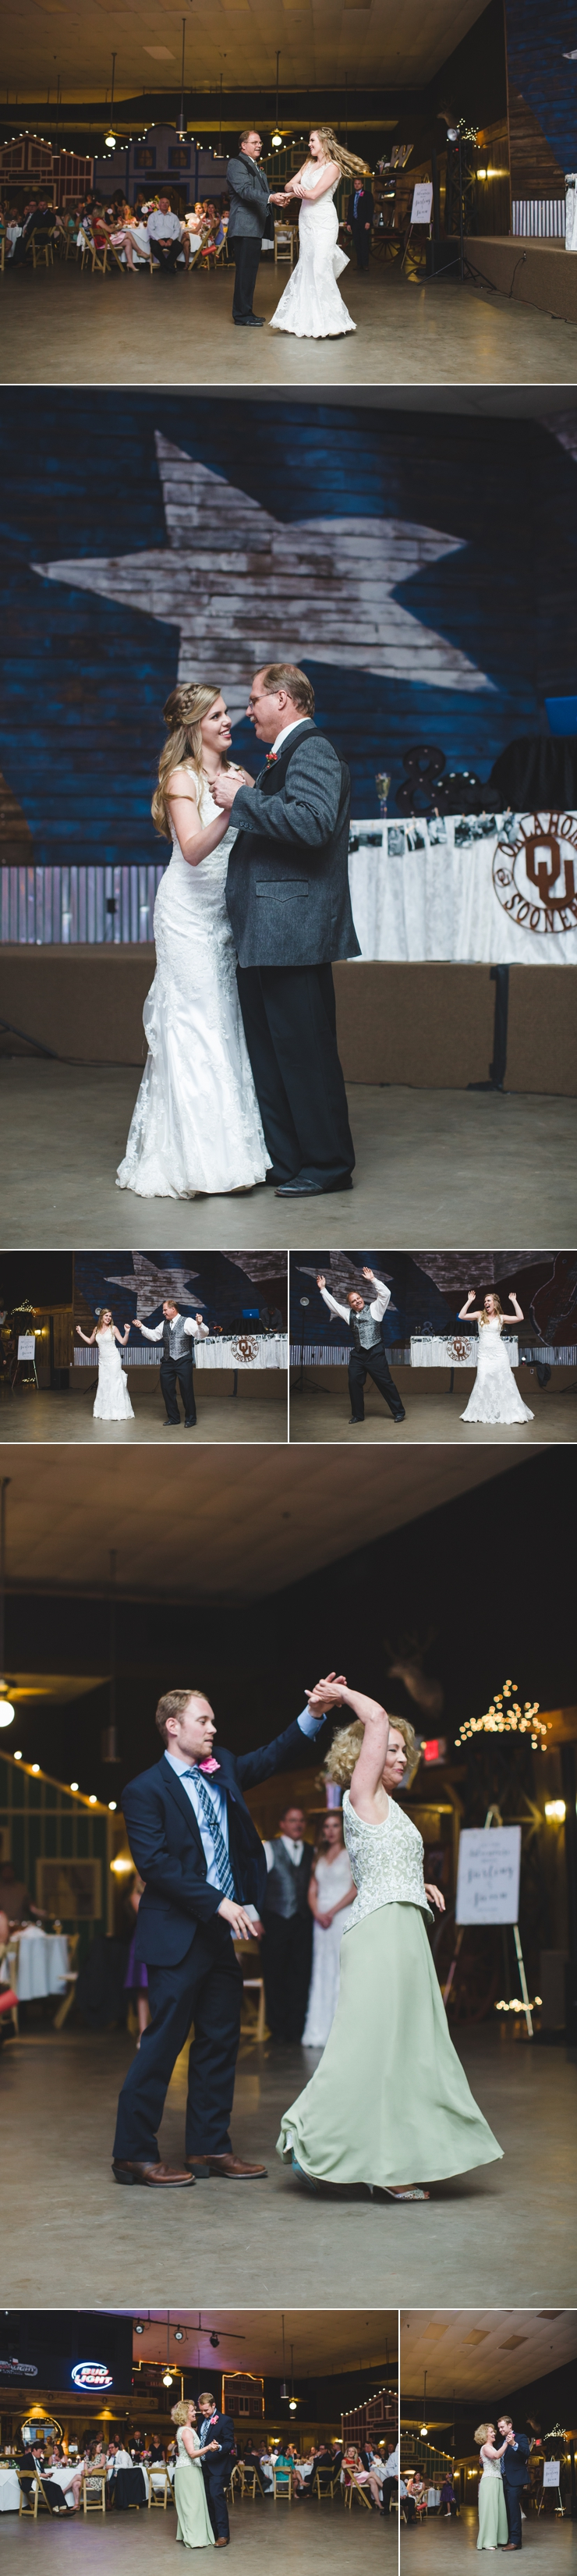 White Wedding - Blog Collages 18.jpg